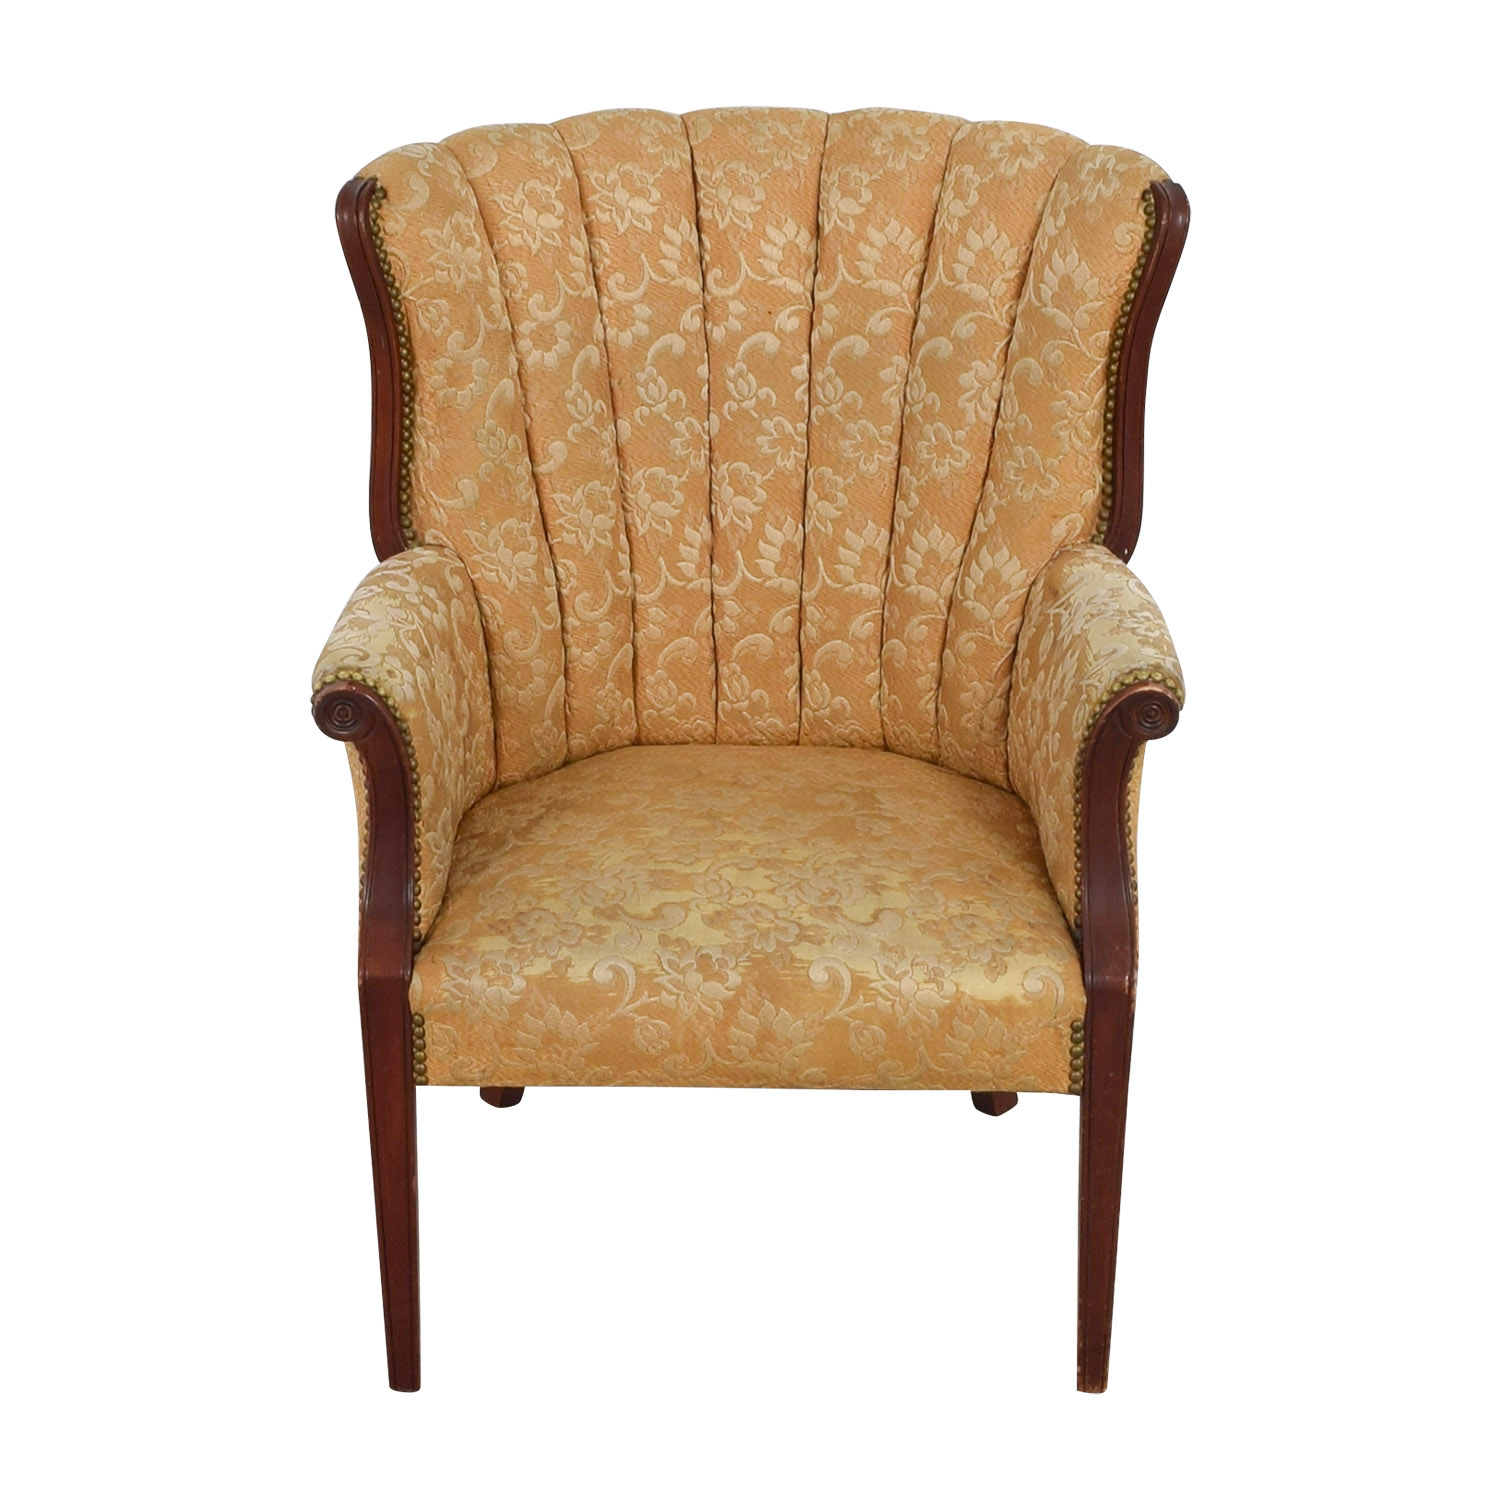 ... buy Antique Indigo Yellow Wingback Accent Chair Accent Chairs ... - 73% OFF - Antique Indigo Yellow Wingback Accent Chair / Chairs